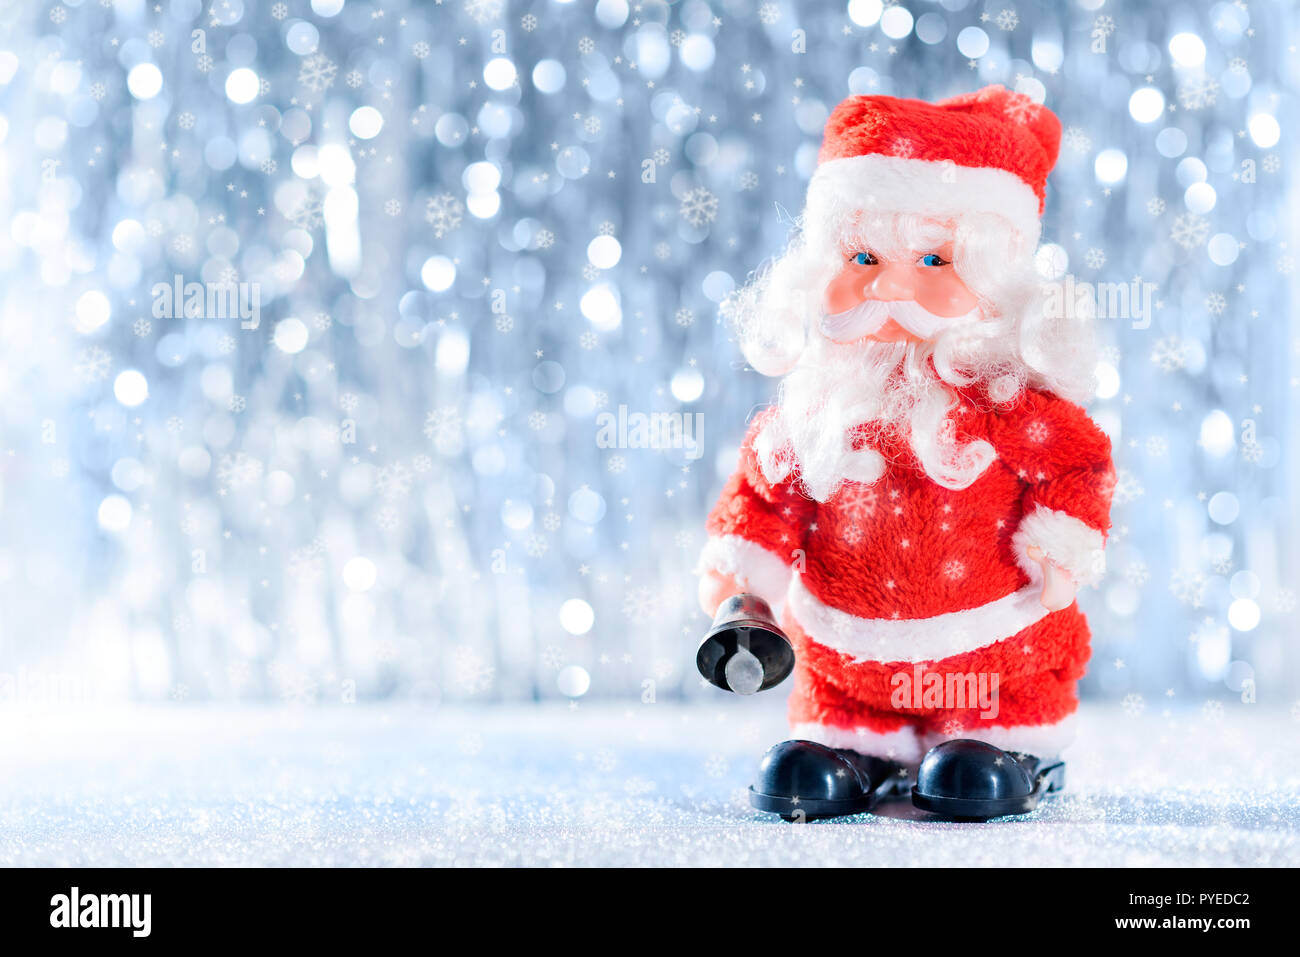 cute santa clause in winter wonderland christmas background with copy space PYEDC2